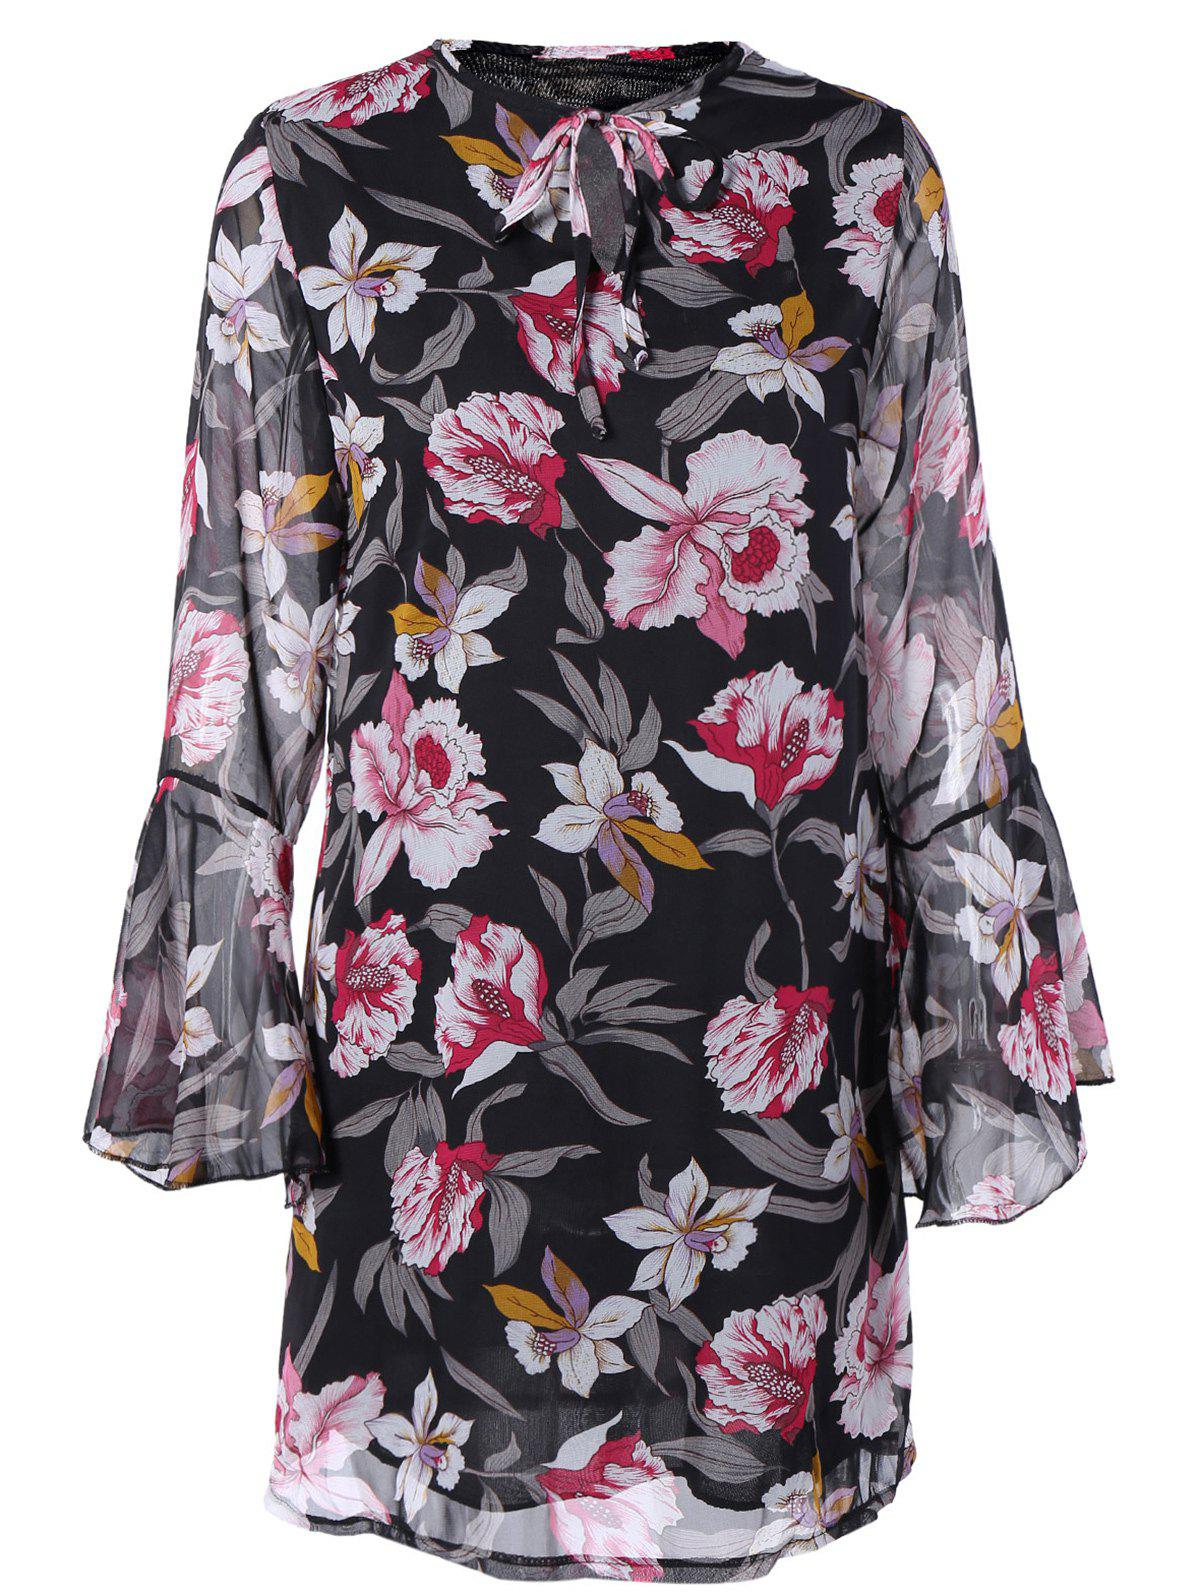 Ladylike Flare Sleeve Floral Dress For Women - BLACK XL